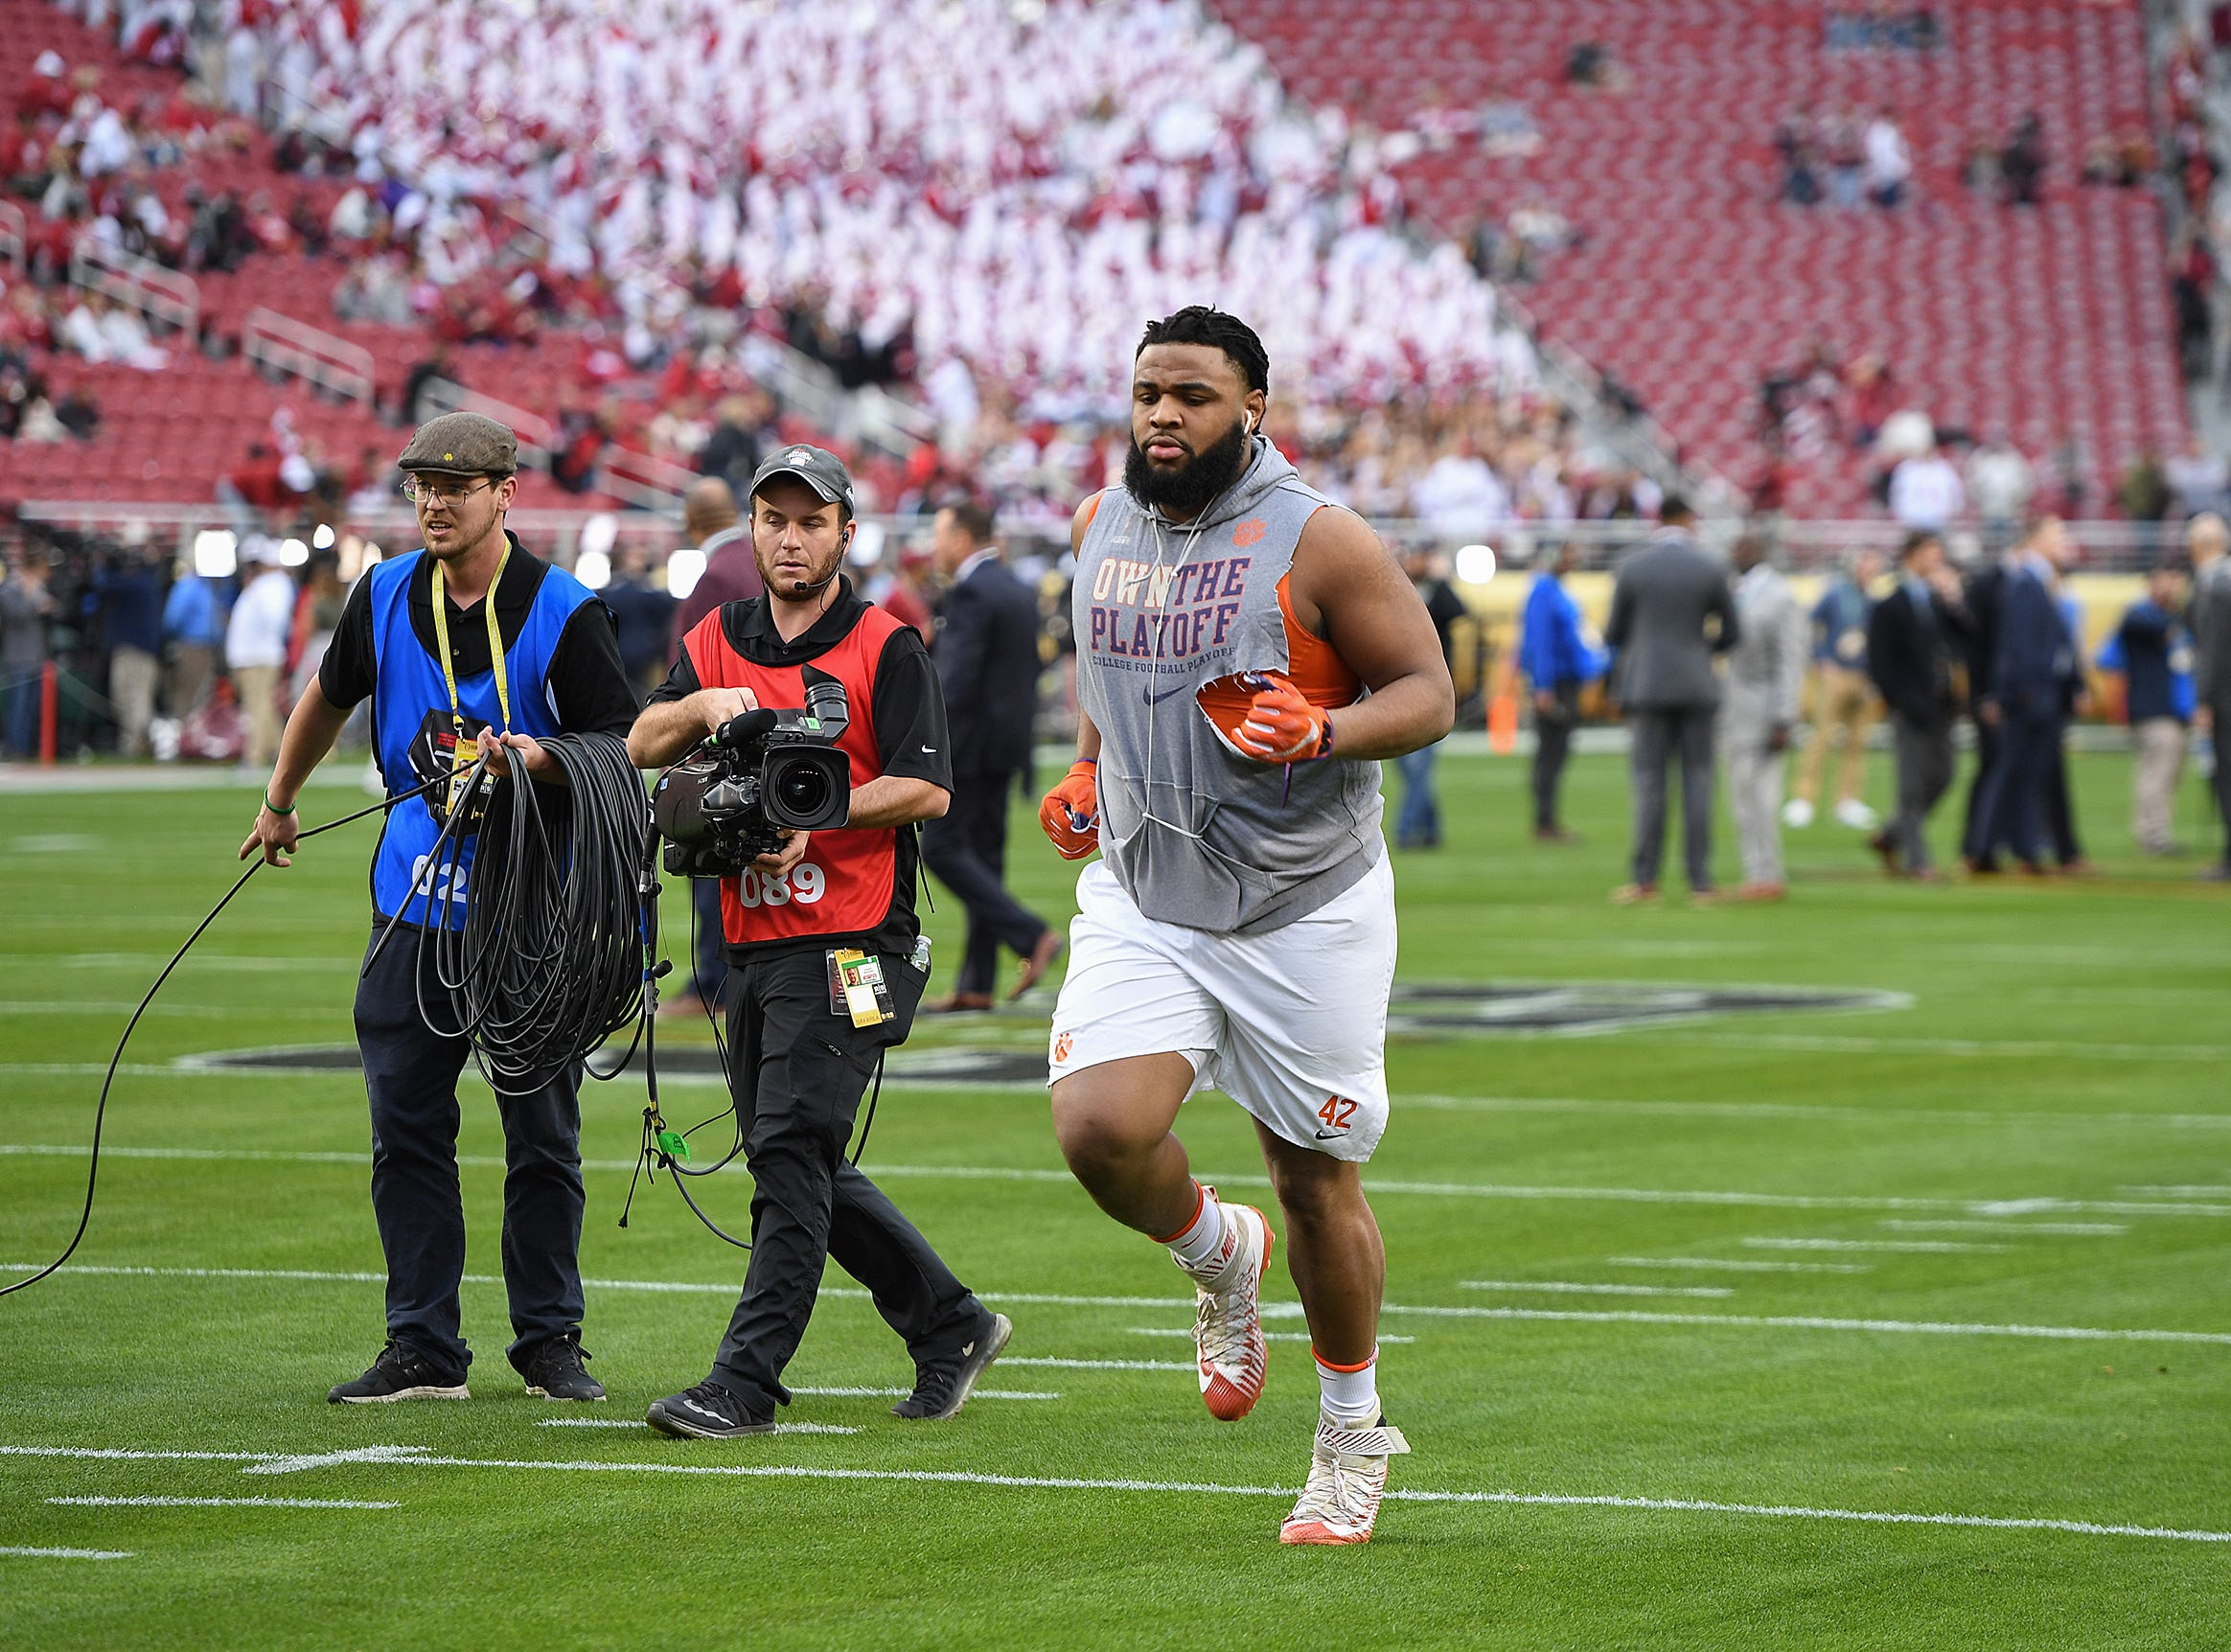 Clemson defensive lineman Christian Wilkins warms up at Levi's Stadium in Santa Clara, CA Monday, January 7, 2019 after the team arrived for their game against Alabama in the College Football National Championship.